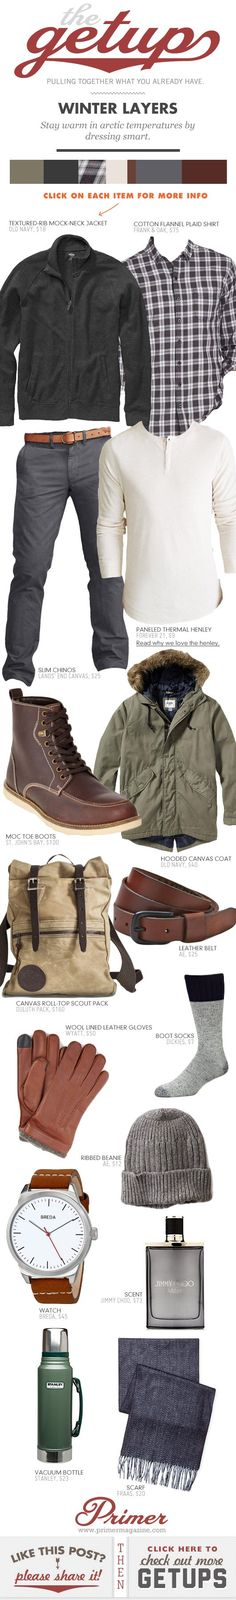 http://www.primermagazine.com/2015/spend/the-getup-winter-layers